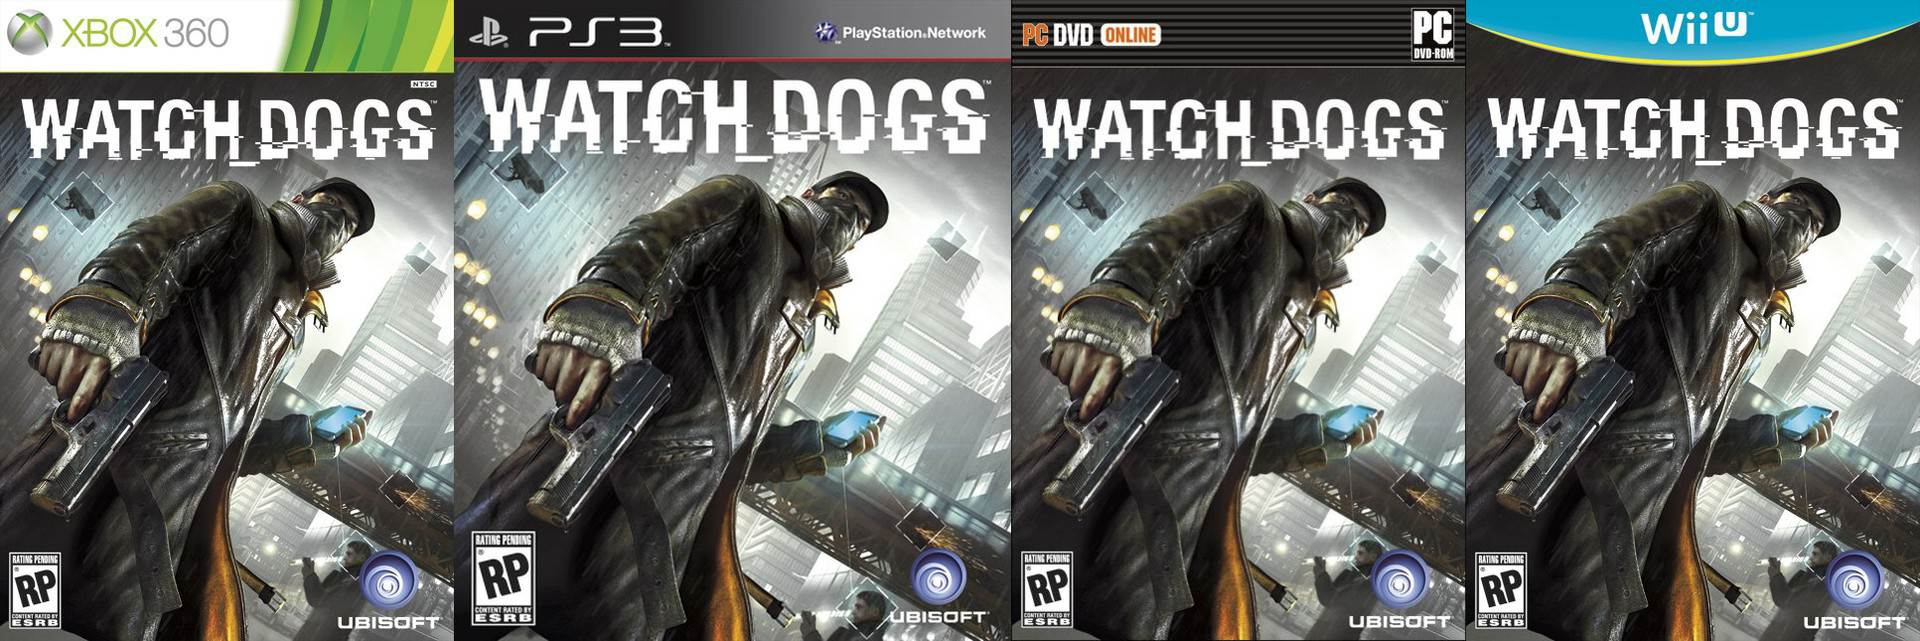 Watch Dogs (Ubisoft) cover art Xbox-360, PS3, PC and Wii U